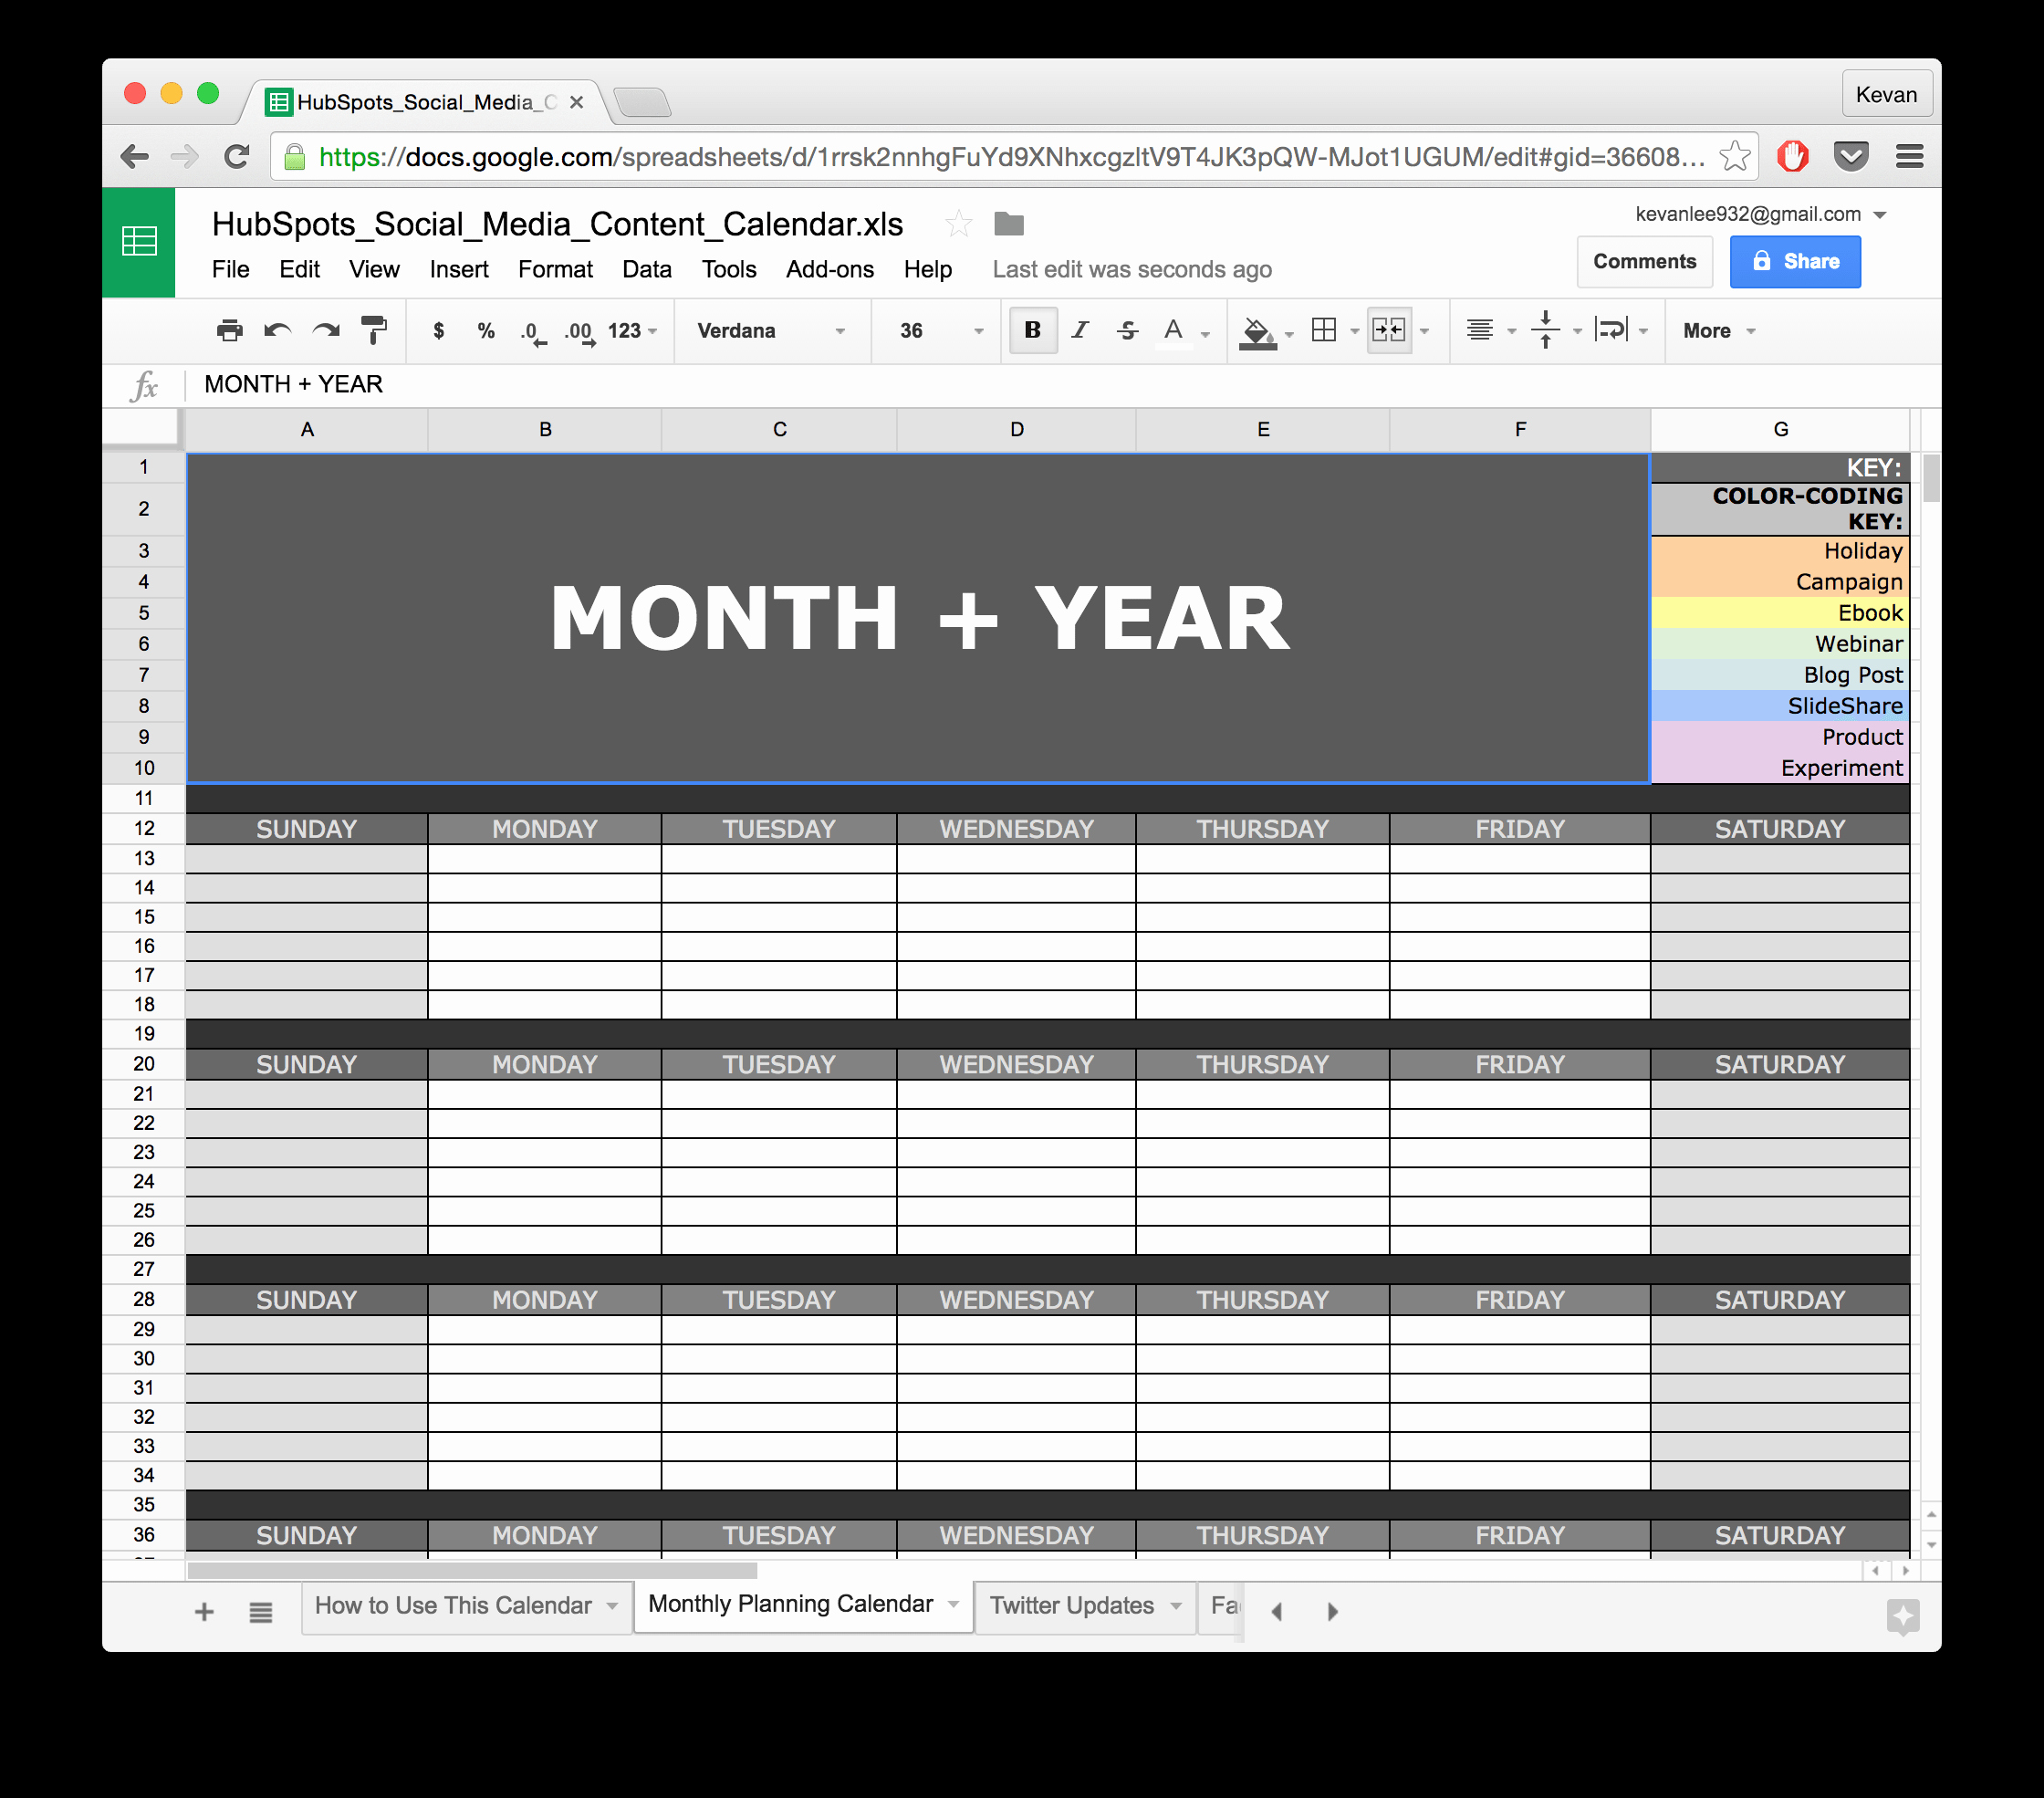 Editorial Calendar Template Google Docs Awesome social Media Calendar Template Google Docs